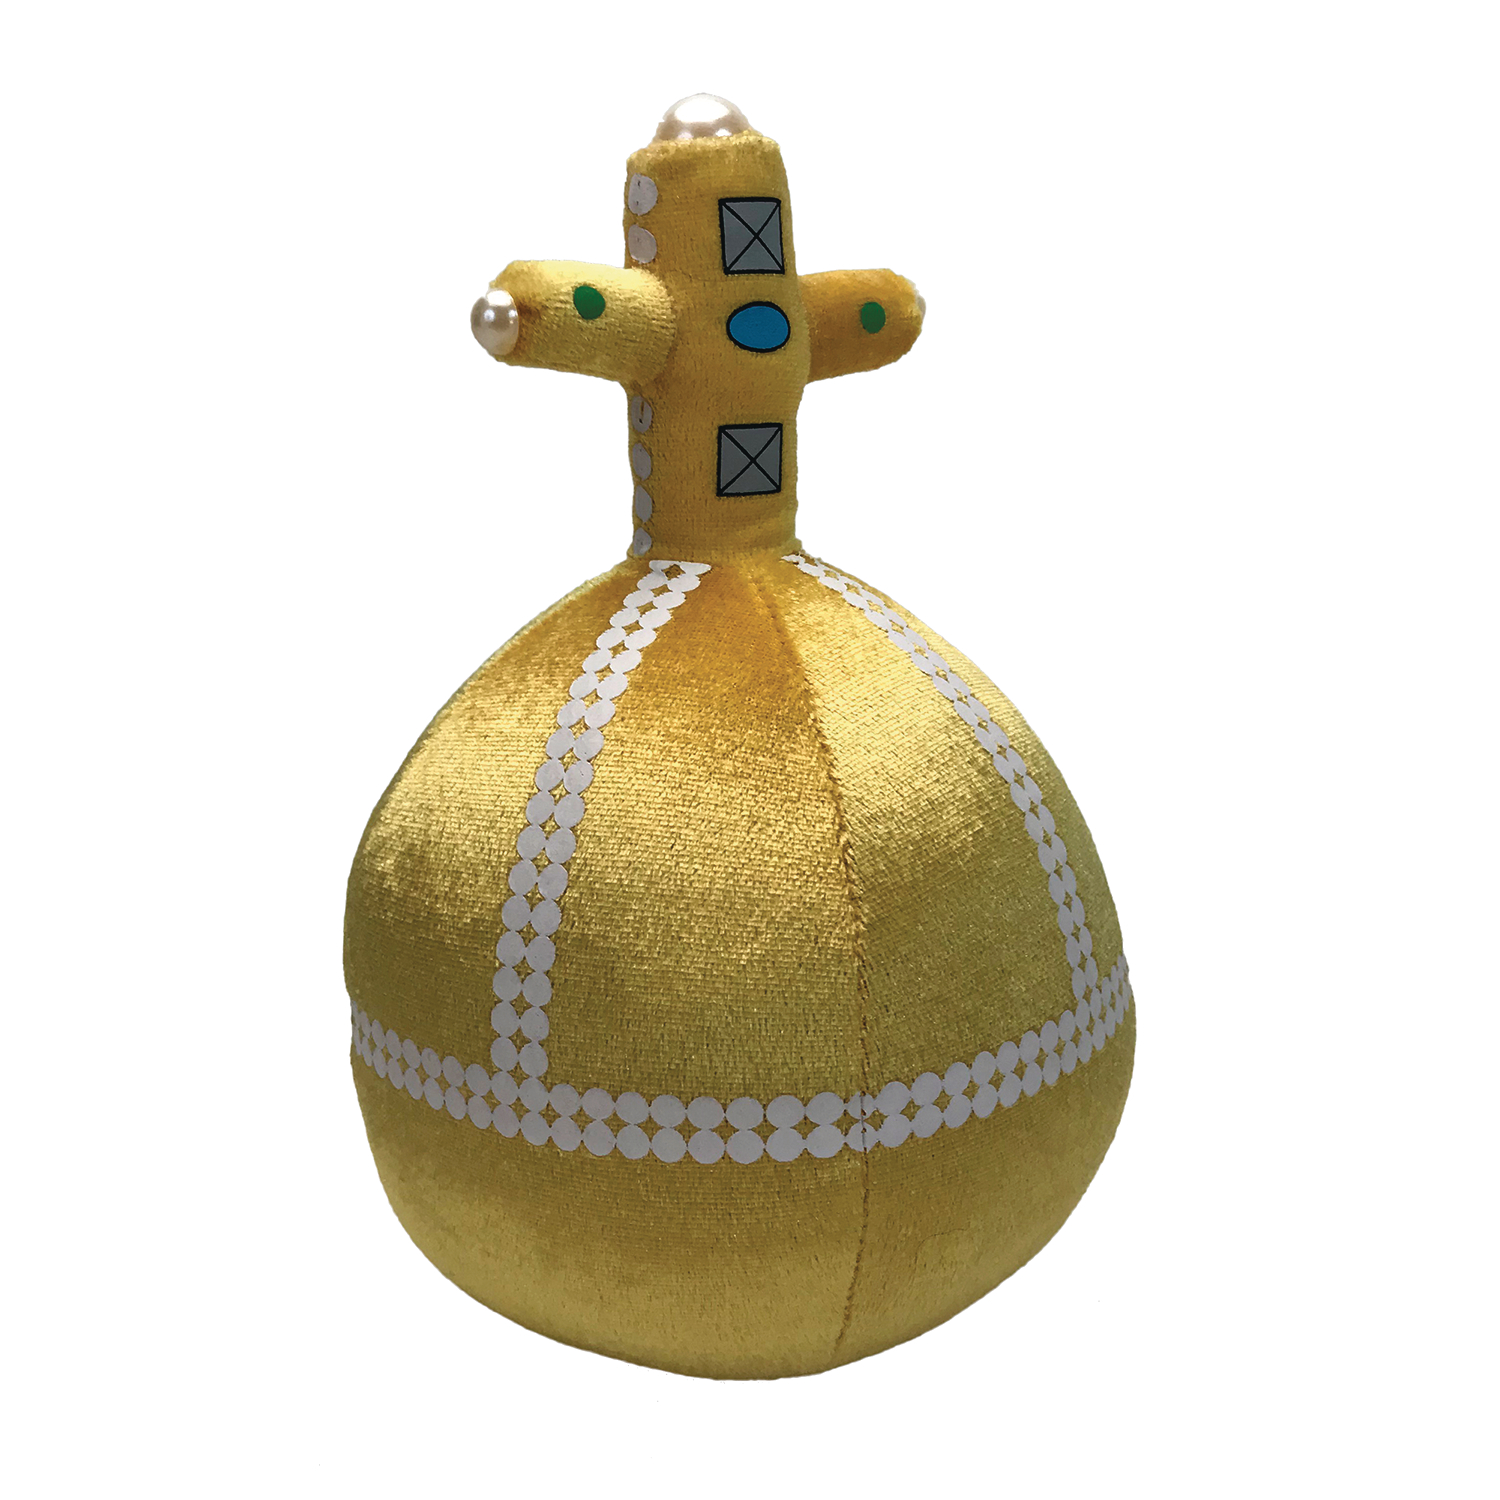 MONTY PYTHON HOLY HAND GRENADE 8IN TALKING PLUSH